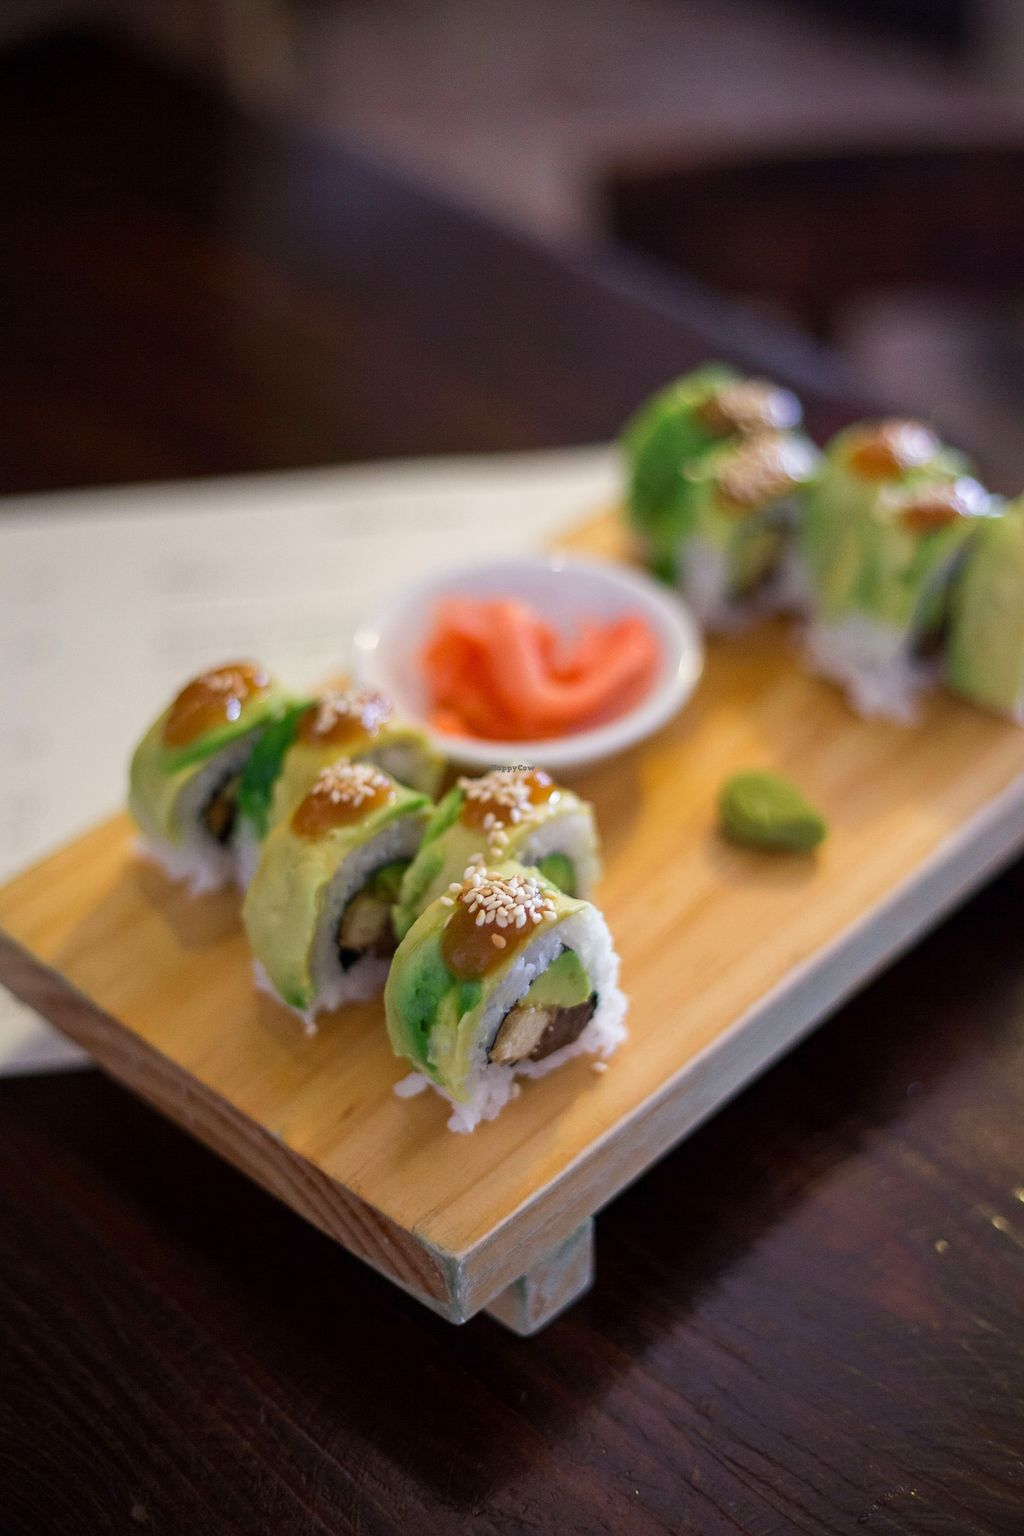 "Photo of El Buda Profano  by <a href=""/members/profile/Hootinthehouse"">Hootinthehouse</a> <br/>Avocado wrapped sushi, Goki <br/> June 21, 2017  - <a href='/contact/abuse/image/64990/271918'>Report</a>"